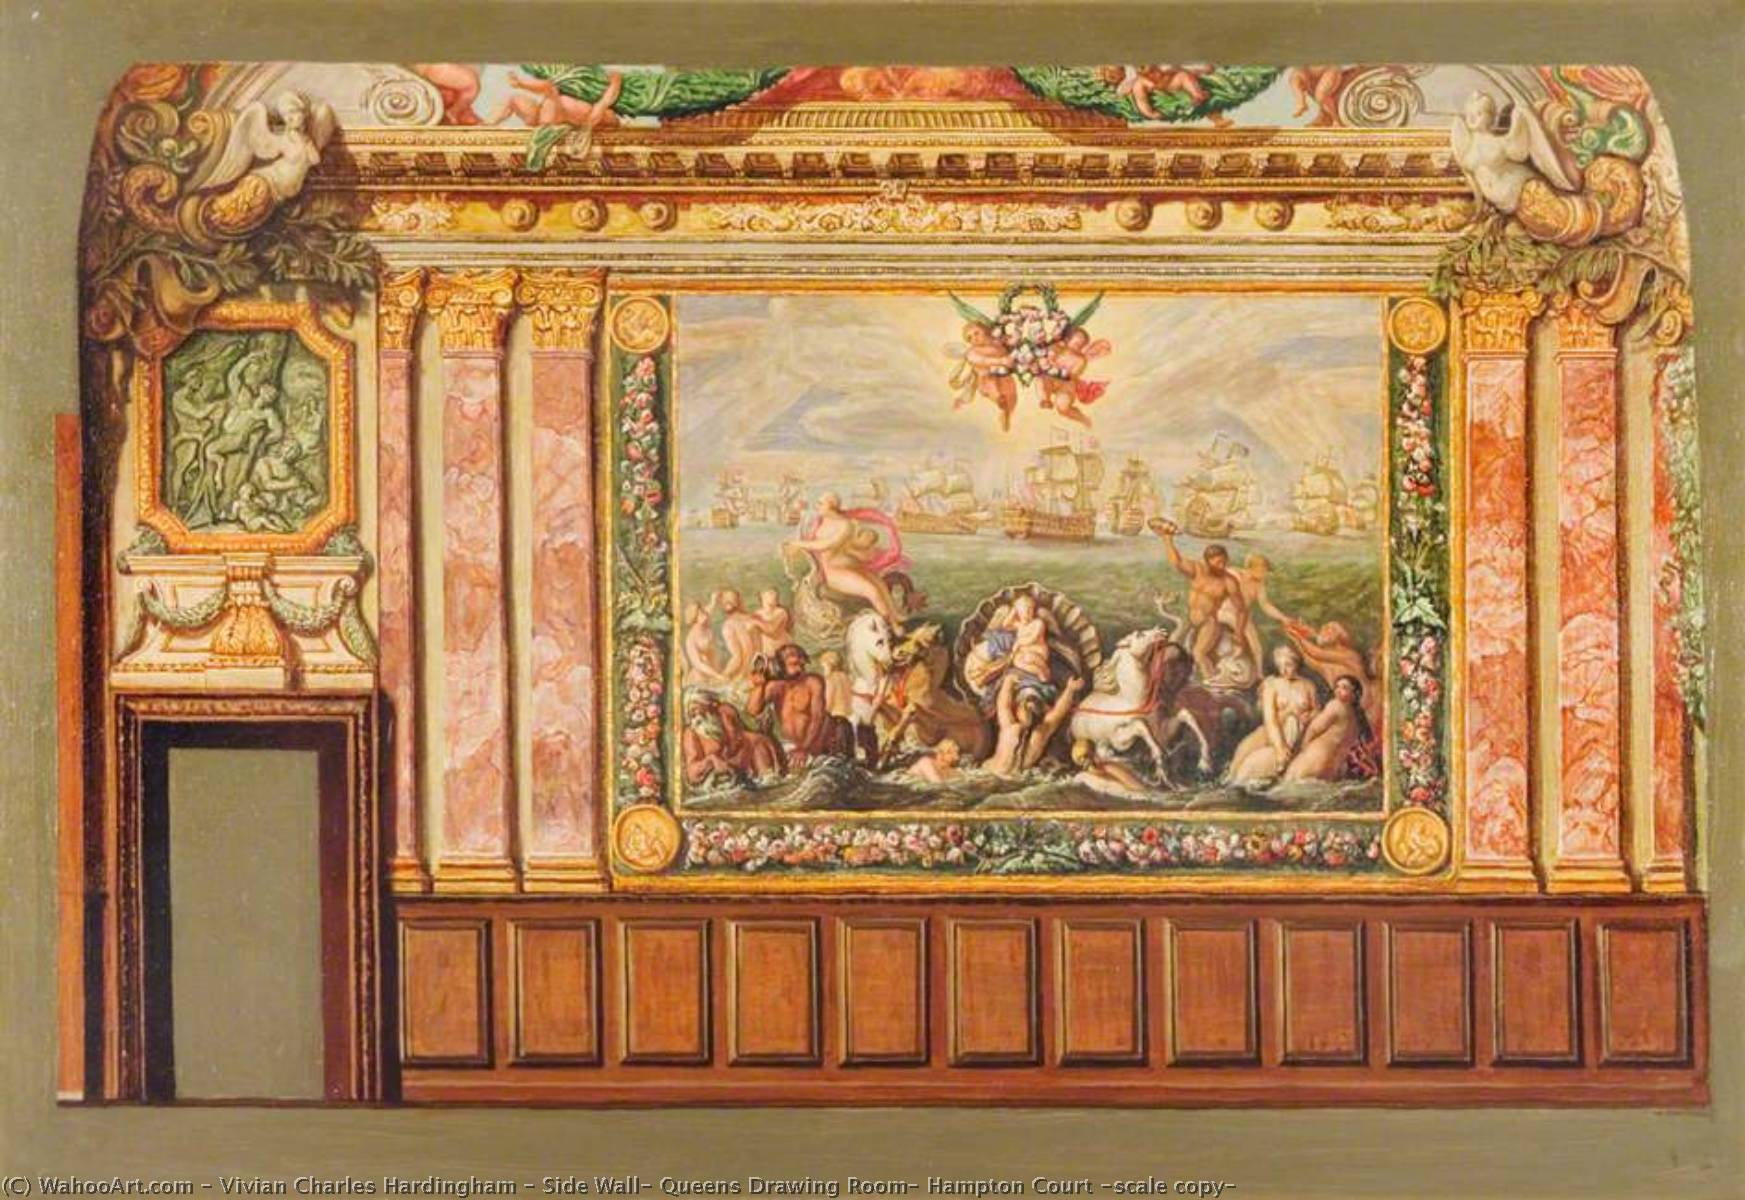 Side Wall, Queens Drawing Room, Hampton Court (scale copy) by Vivian Charles Hardingham | WahooArt.com